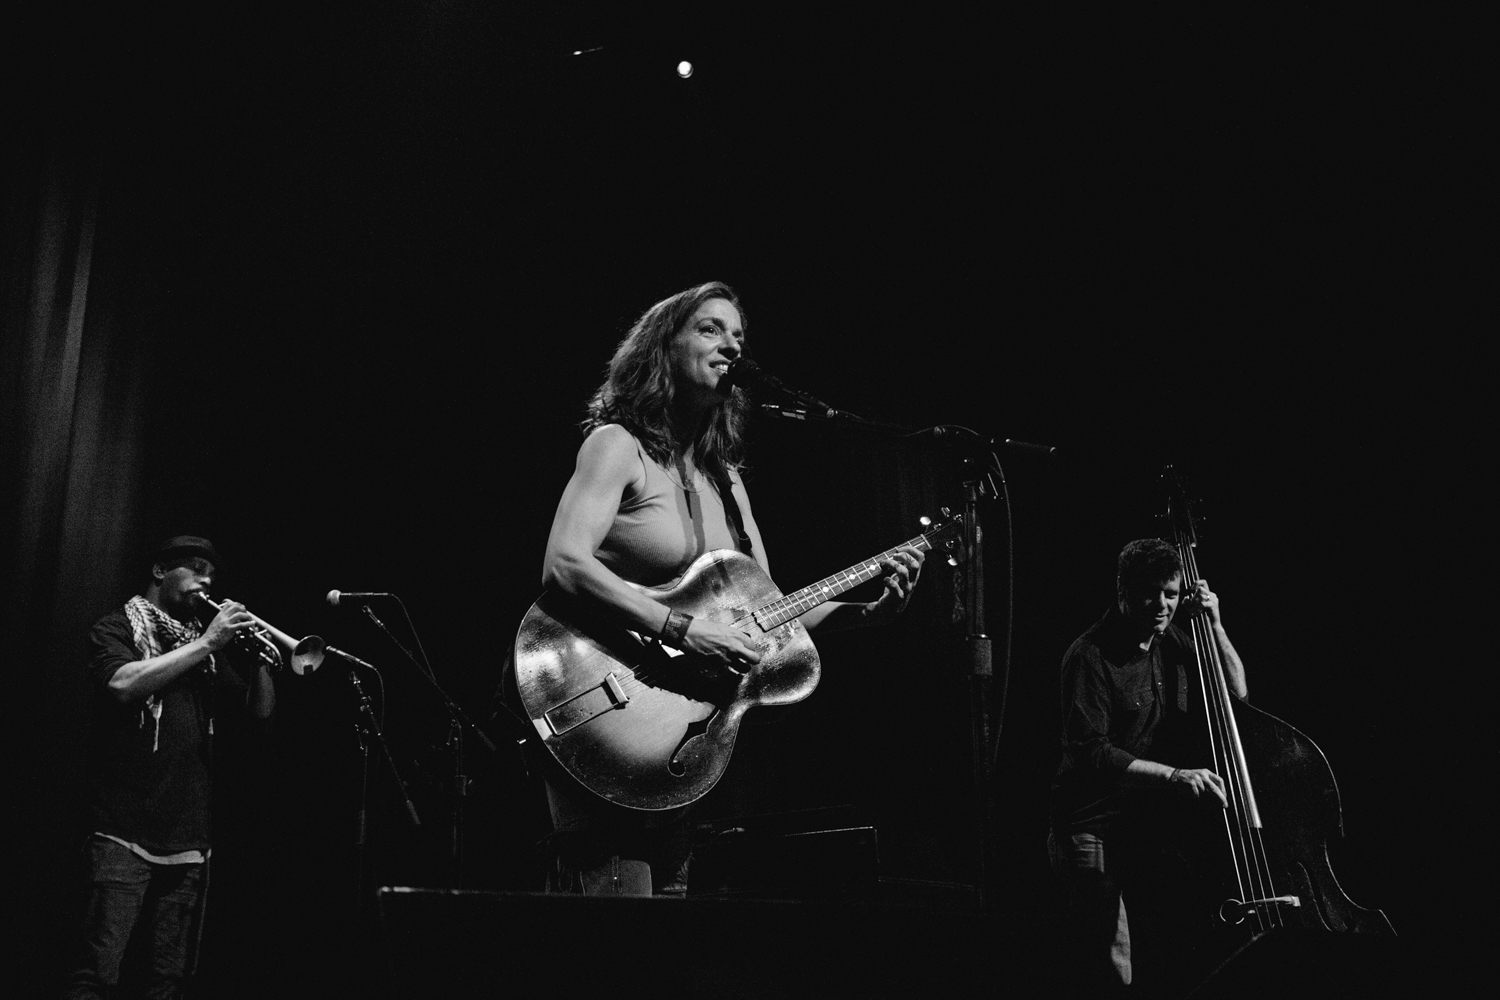 the-fillmore-ani-difranco-live-music-photography-sf.jpg